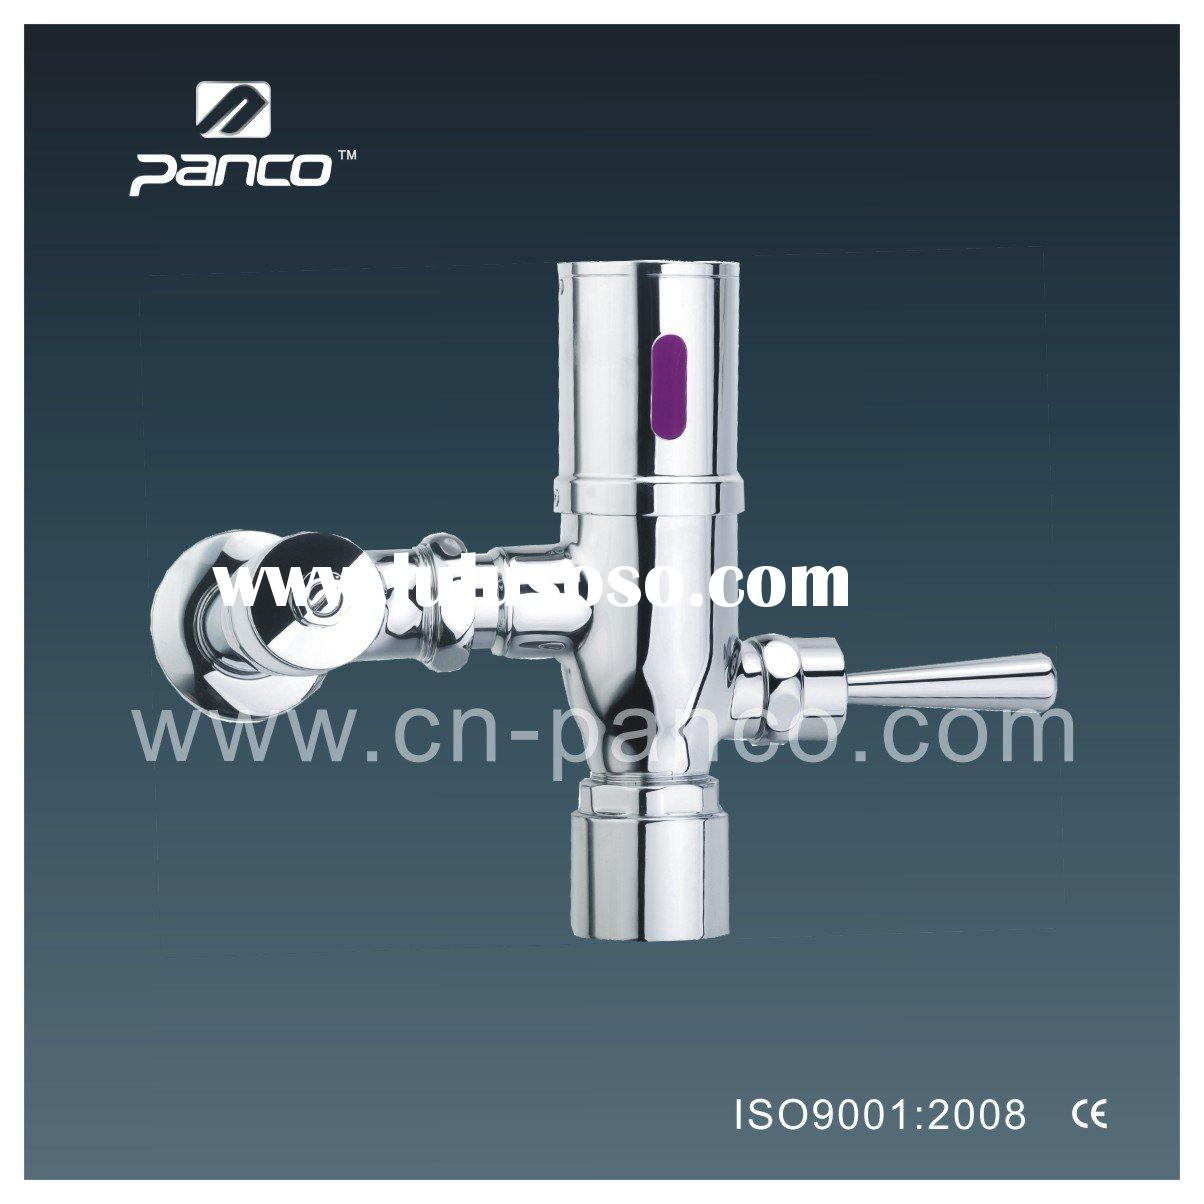 Automatic sensor Toilet Flusher